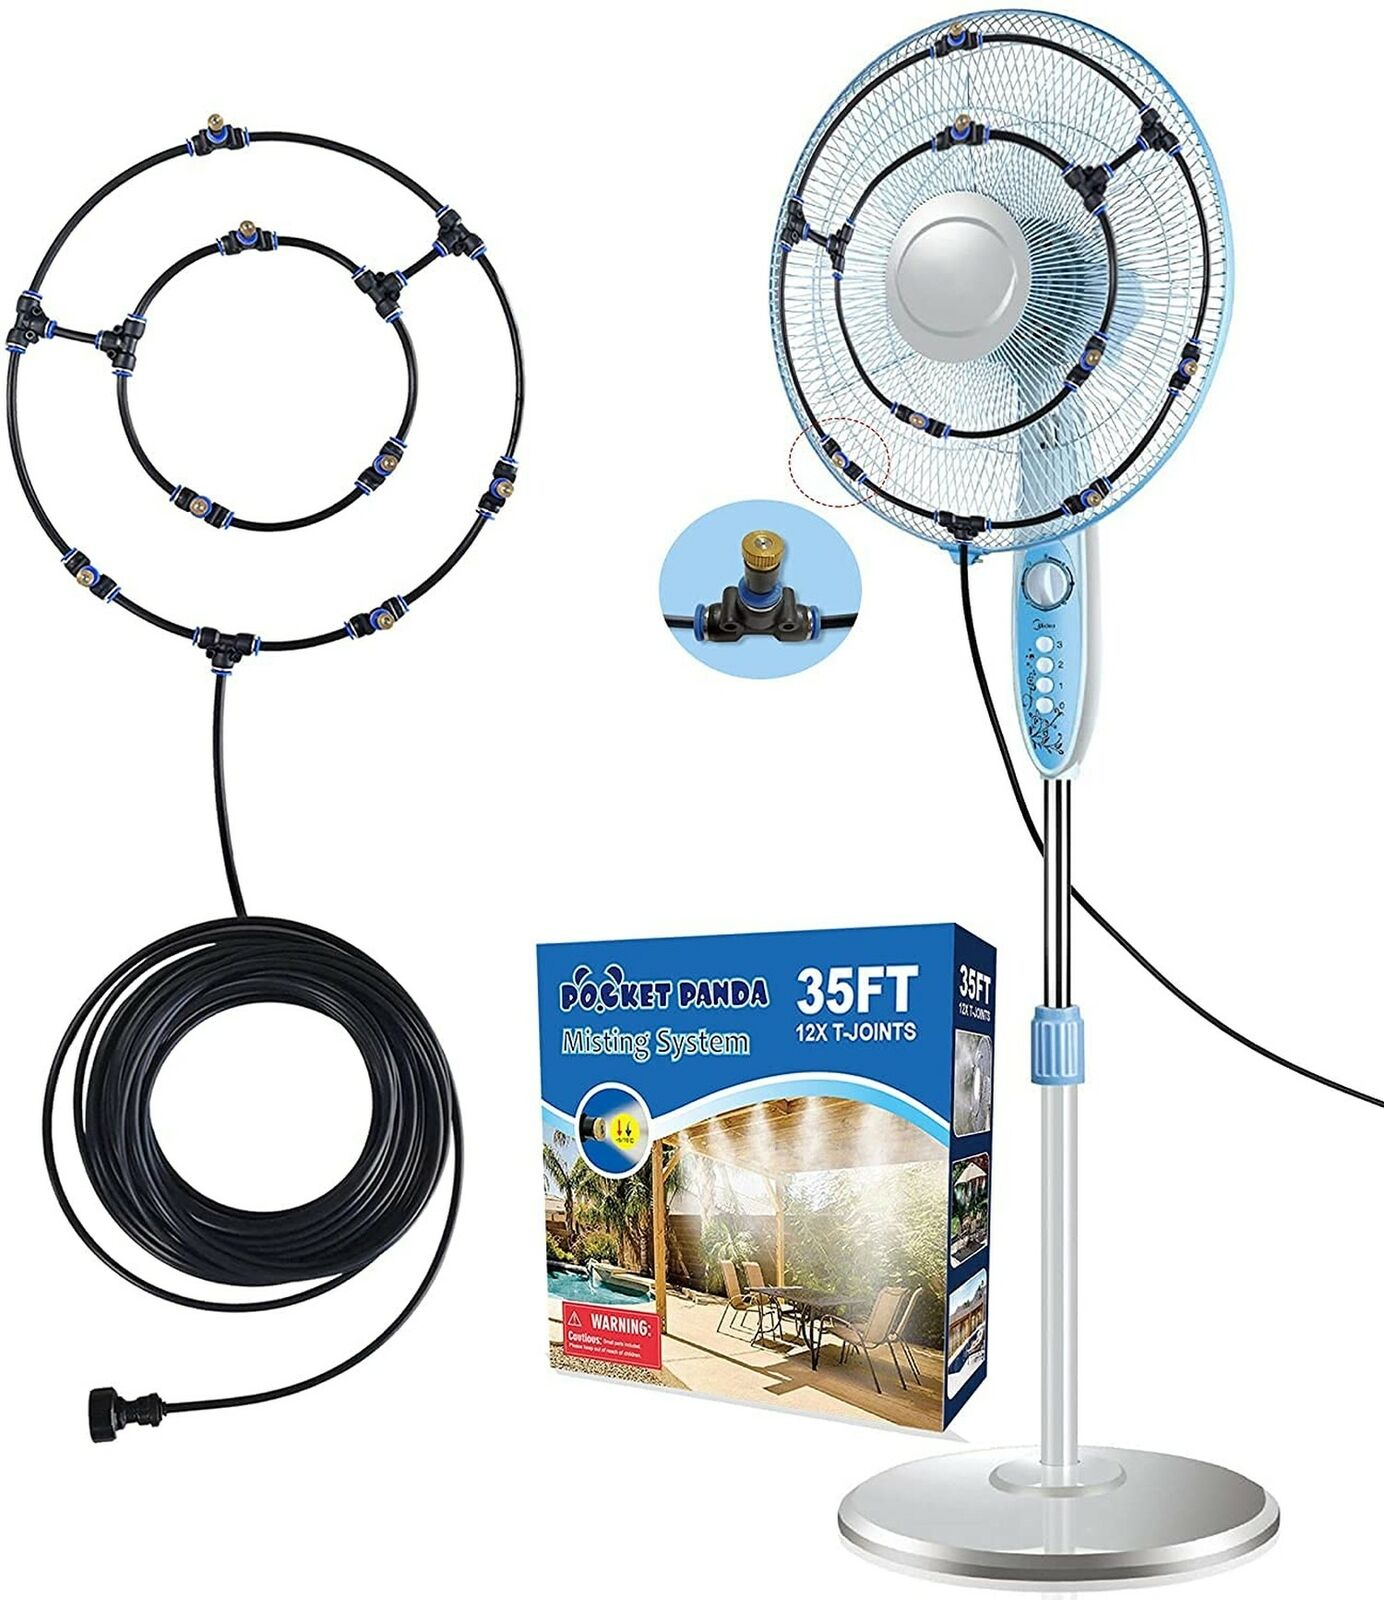 Misting Fans for Outside Patio, 35FT Misting Hose, Mister Fan Outdoor for Coo...